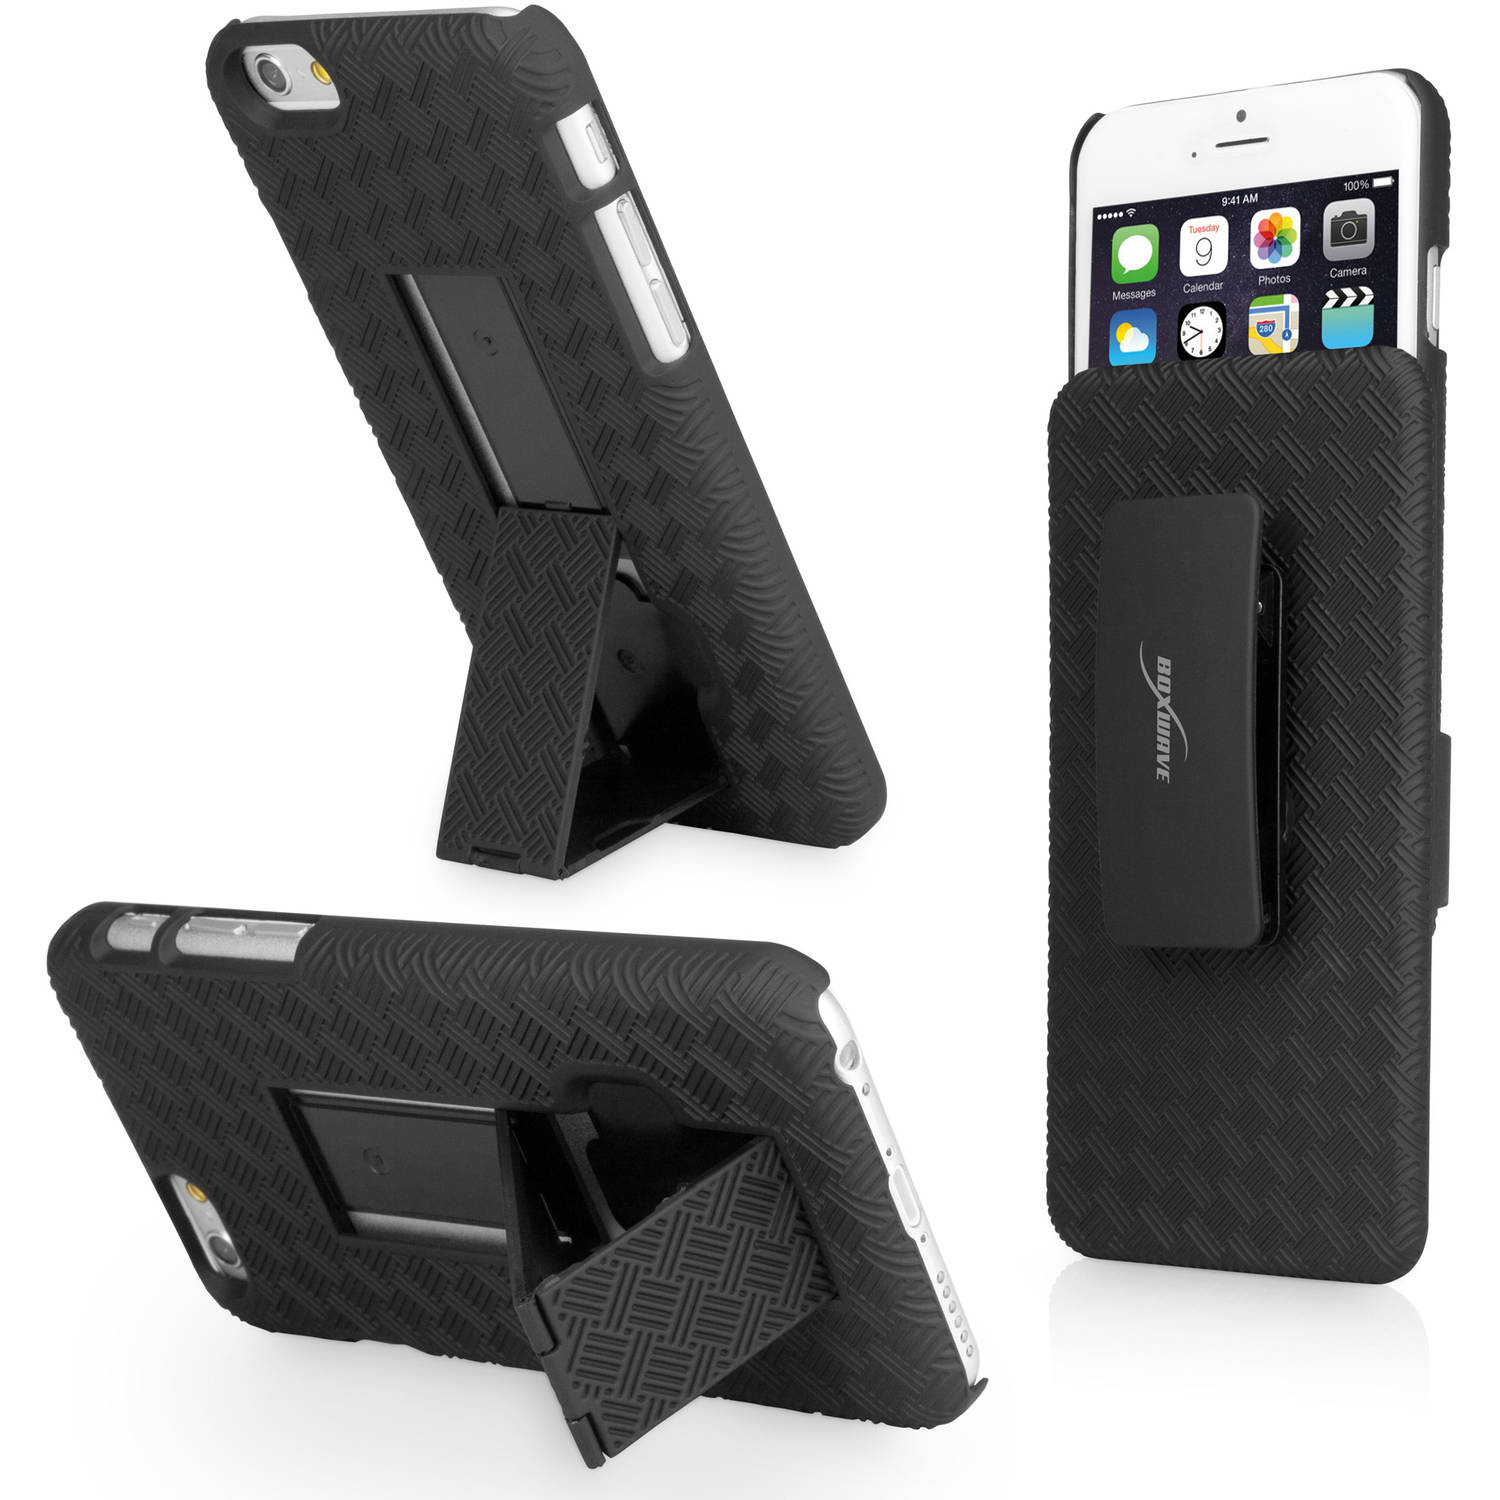 BoxWave Dual+ Holster Case for Apple iPhone 6/6s